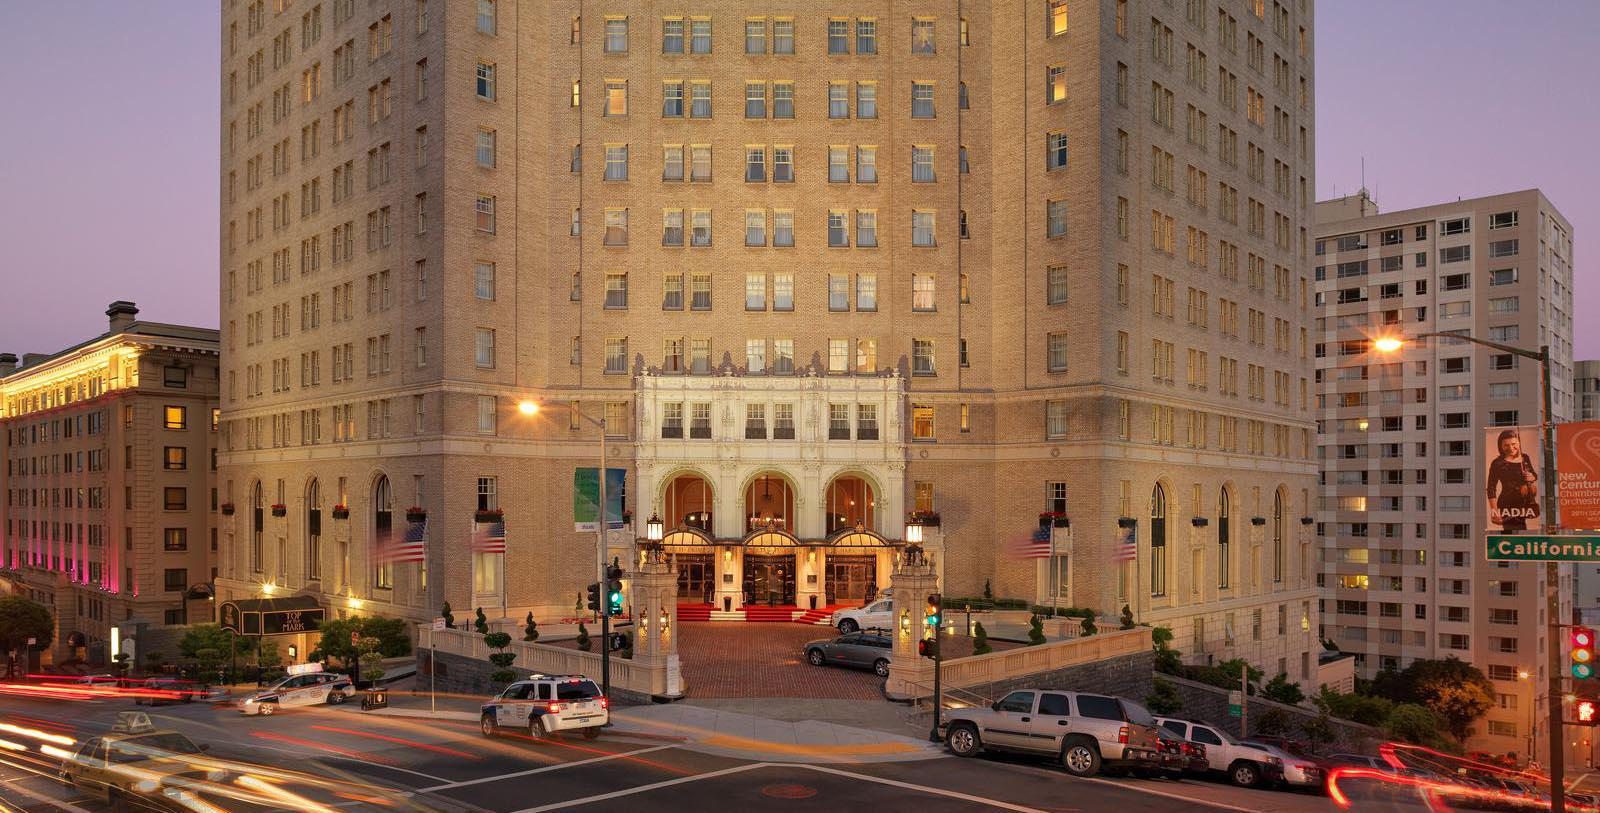 Image of Exterior at Night, InterContinental Mark Hopkins Hotel in San Francisco, California, 1926, Member of Historic Hotels of America, Overview